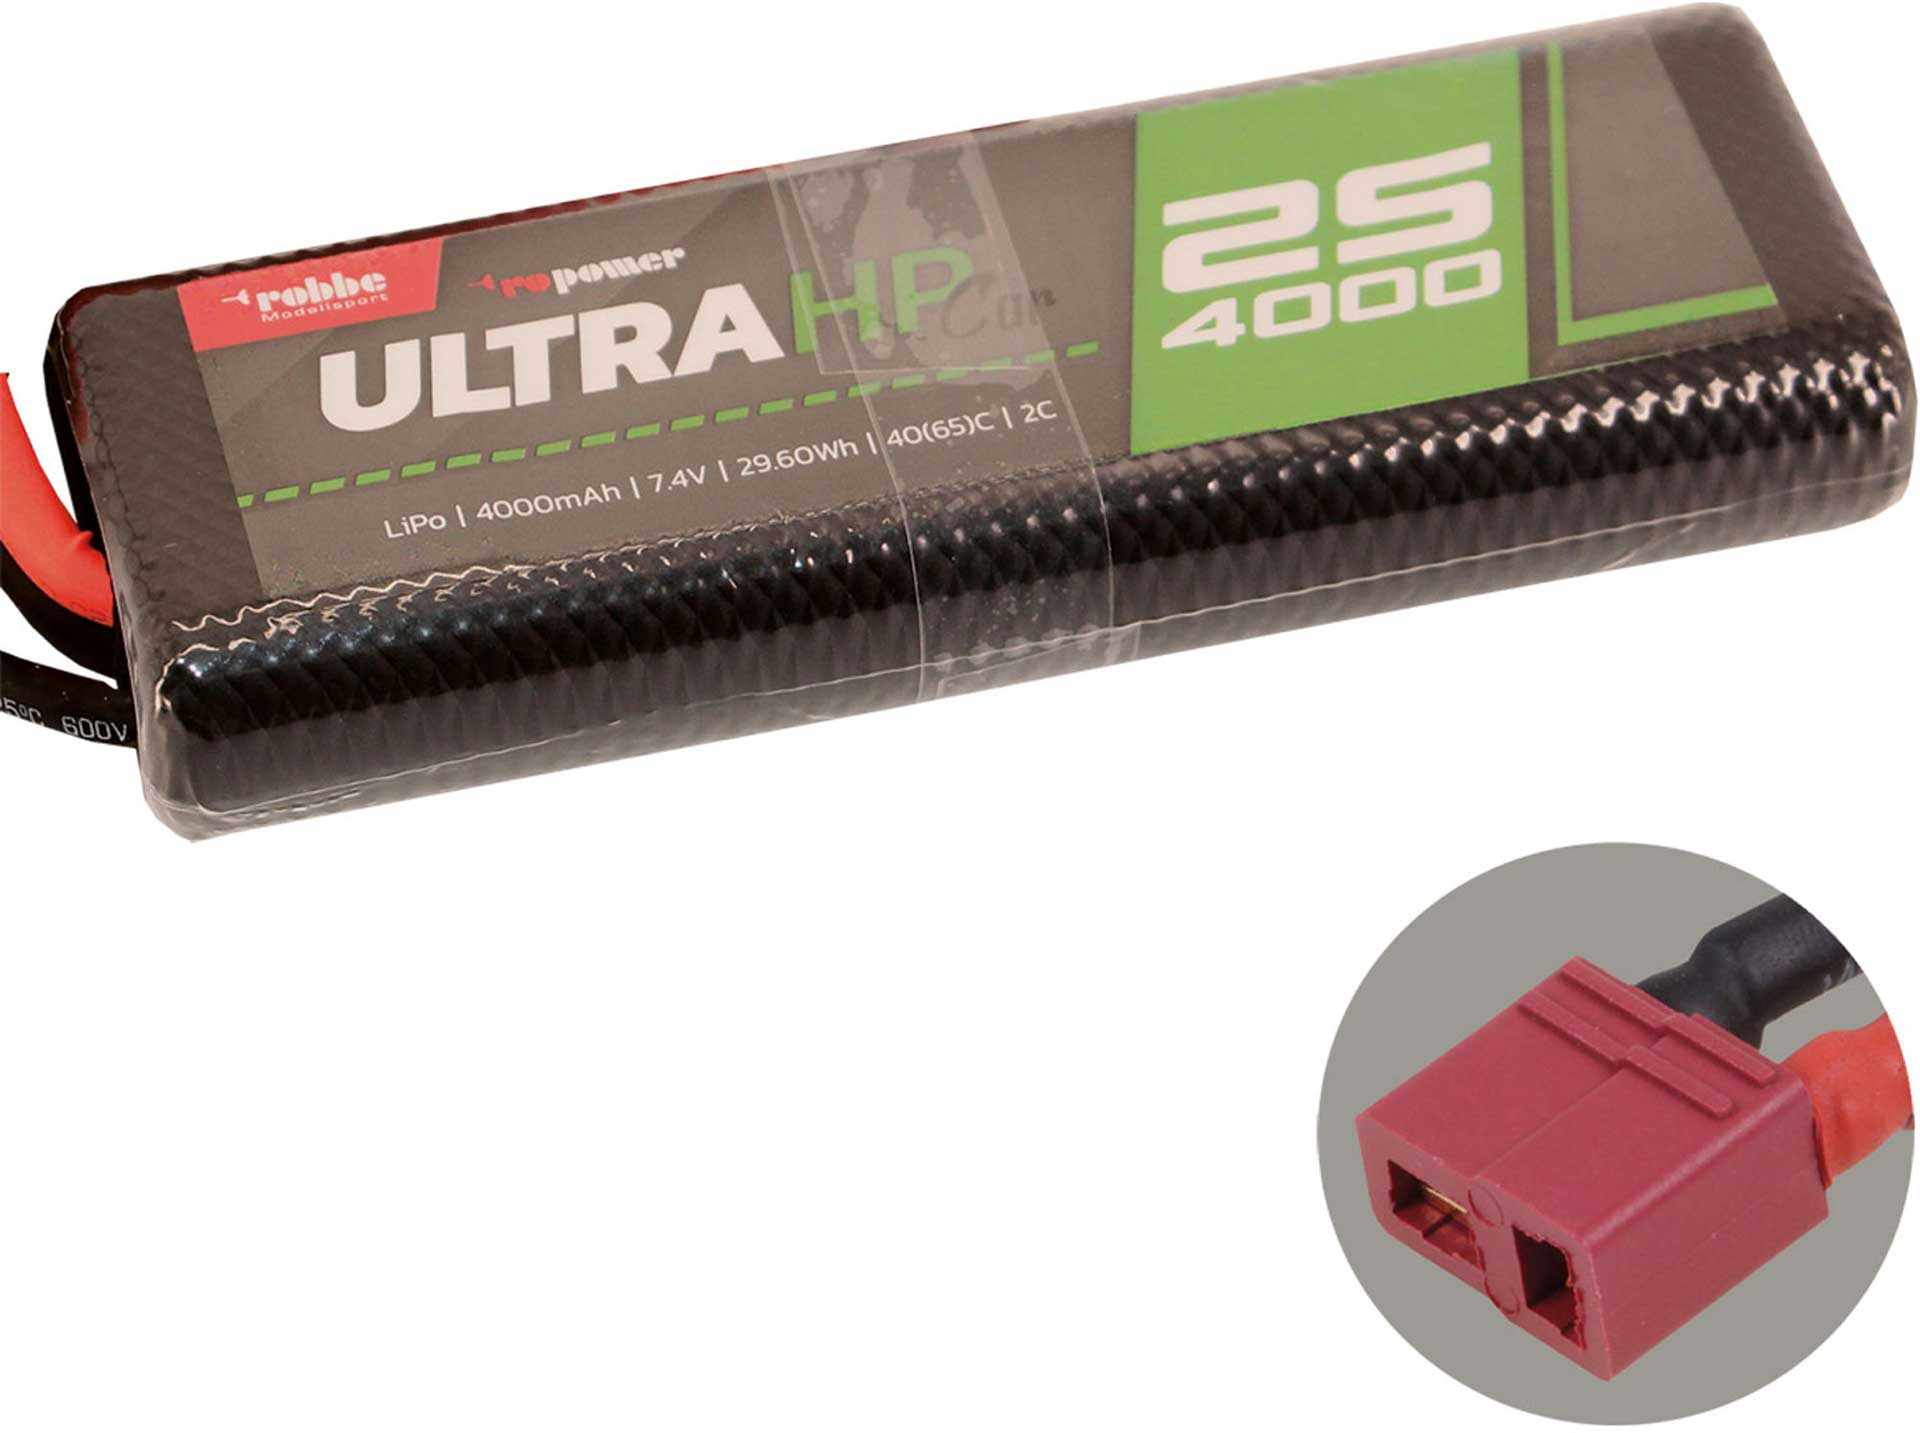 ROBBE RO-POWER ULTRA HP CAR 4000MAH 7,4 VOLT 2S 40(65)C LIPO AKKU